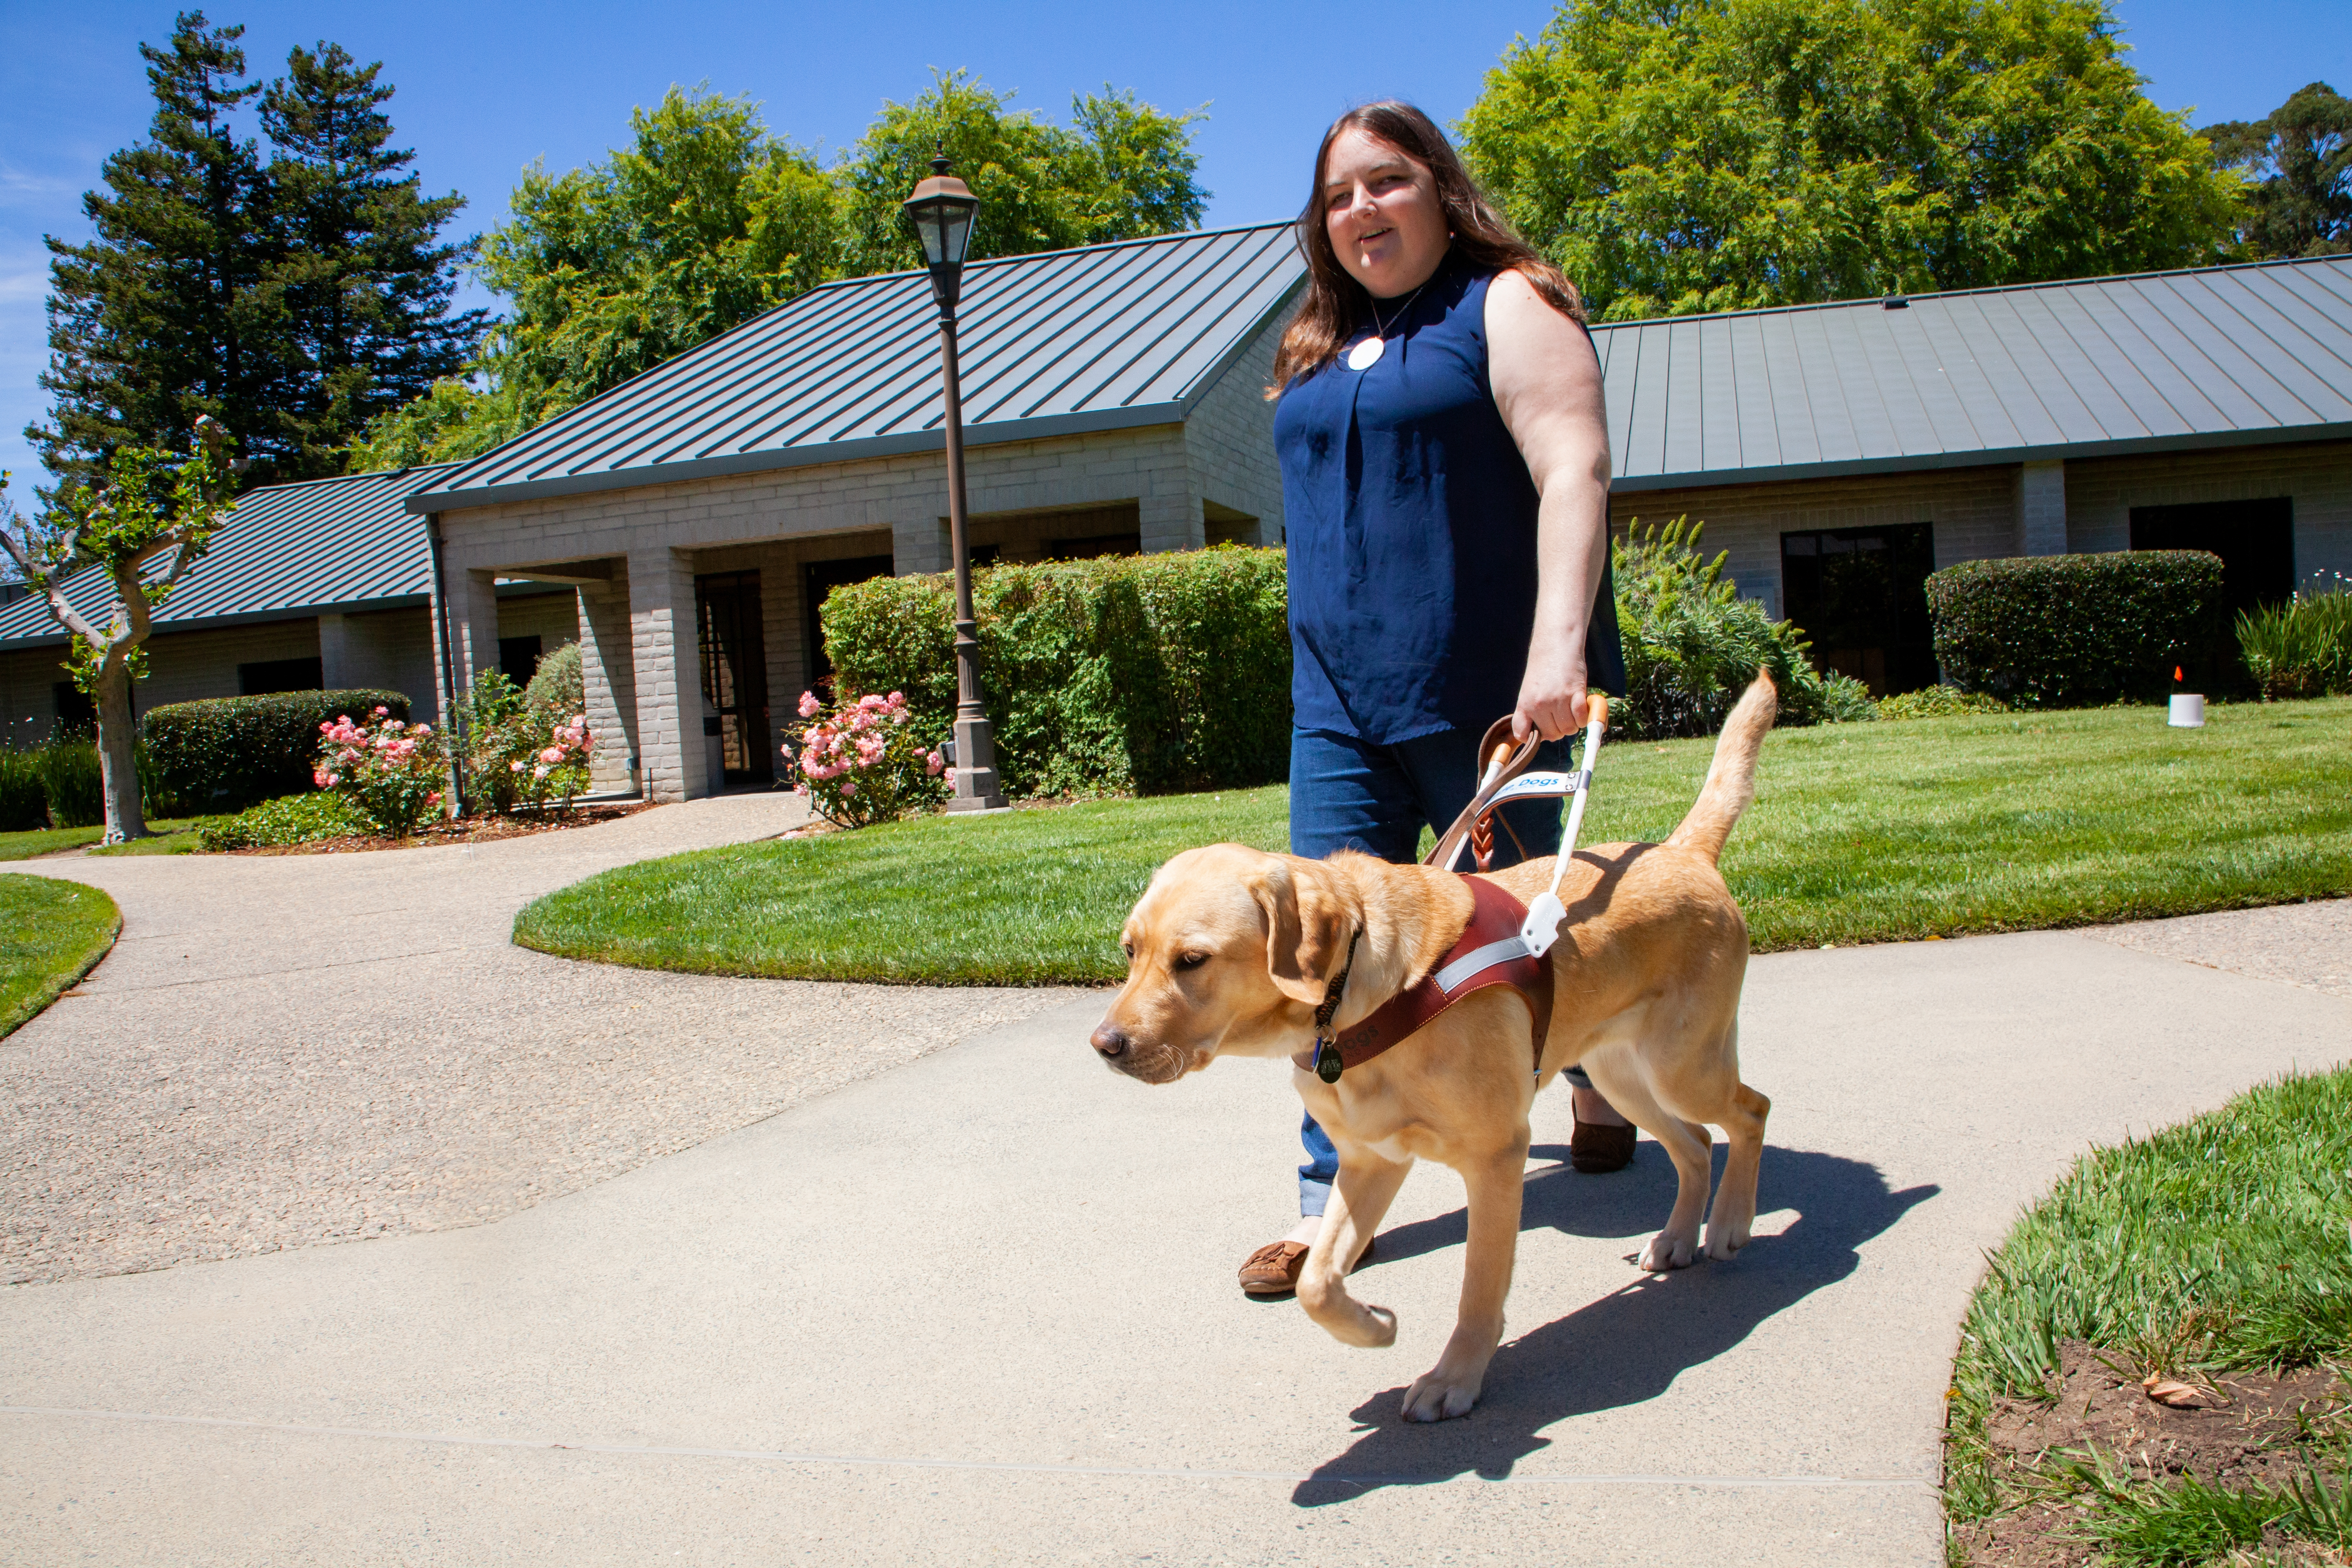 Claire and yellow Lab guide dog Tulane walk through the CA campus of Guide Dogs for the Blind on a bright sunny day.